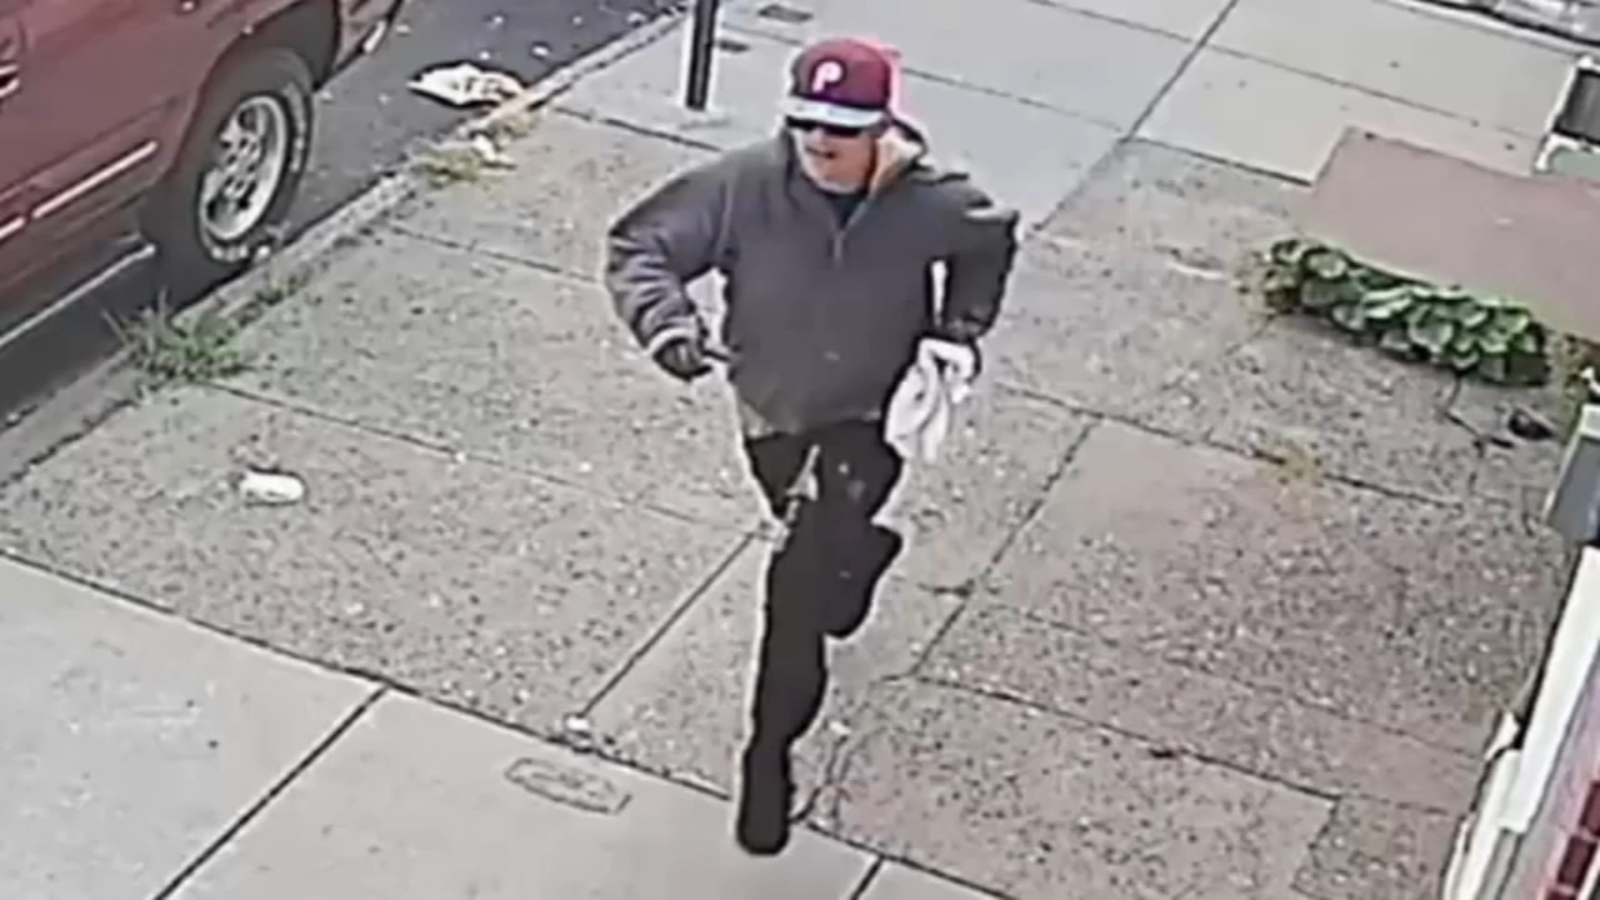 Suspect knocks down 87-year-old, steals payroll bag in South Philadelphia